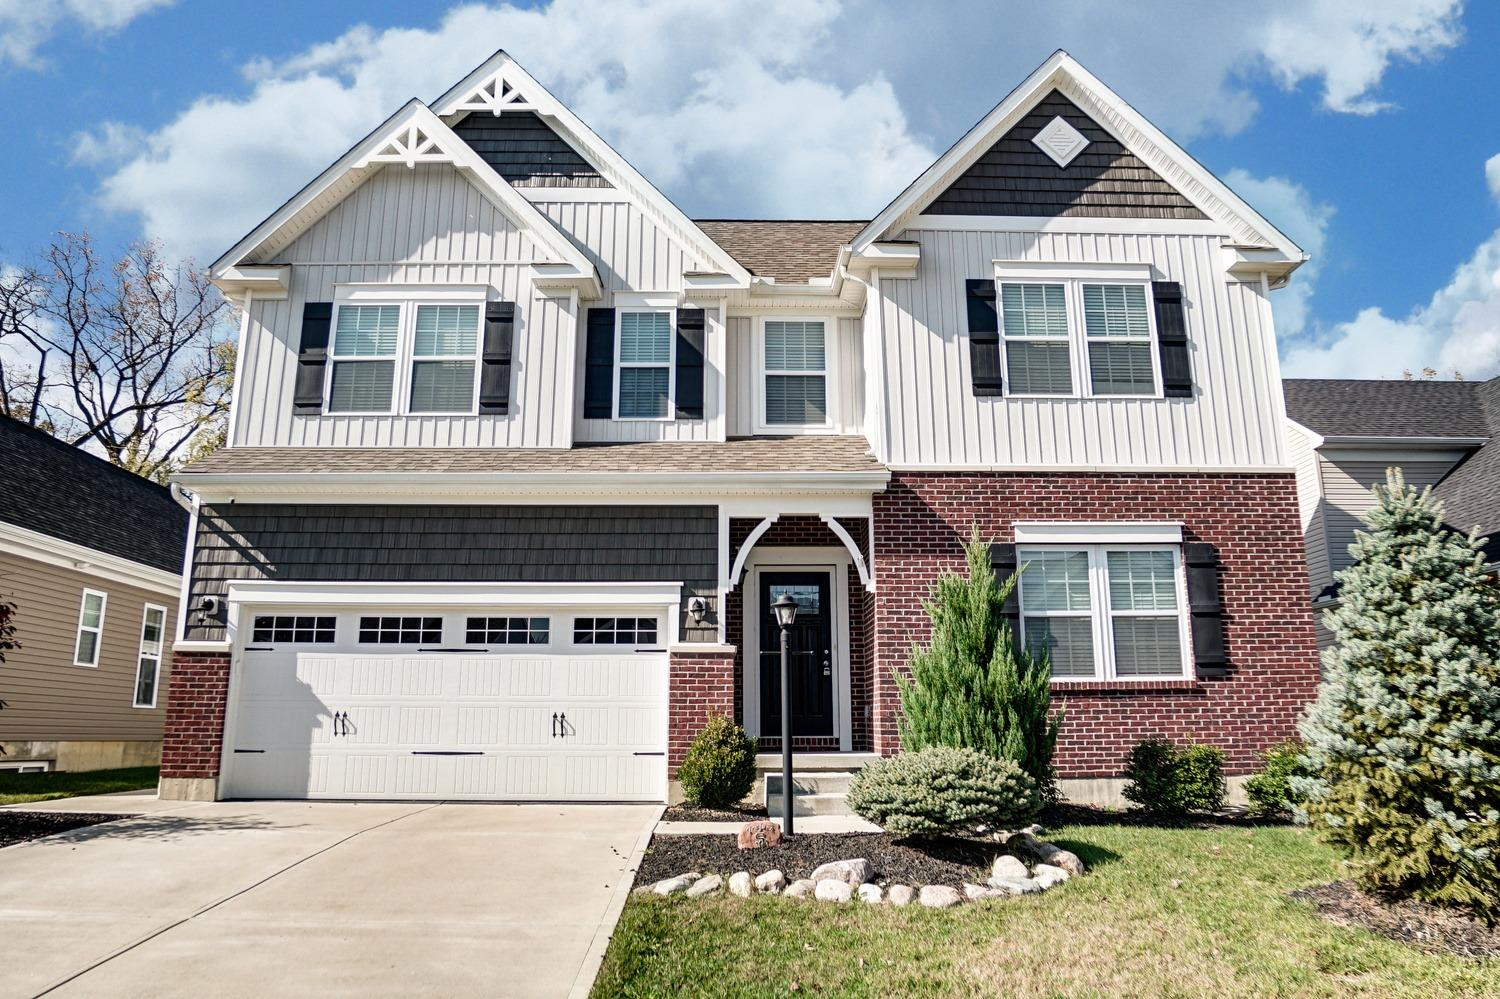 10087 Arnold Dr Woodlawn, OH